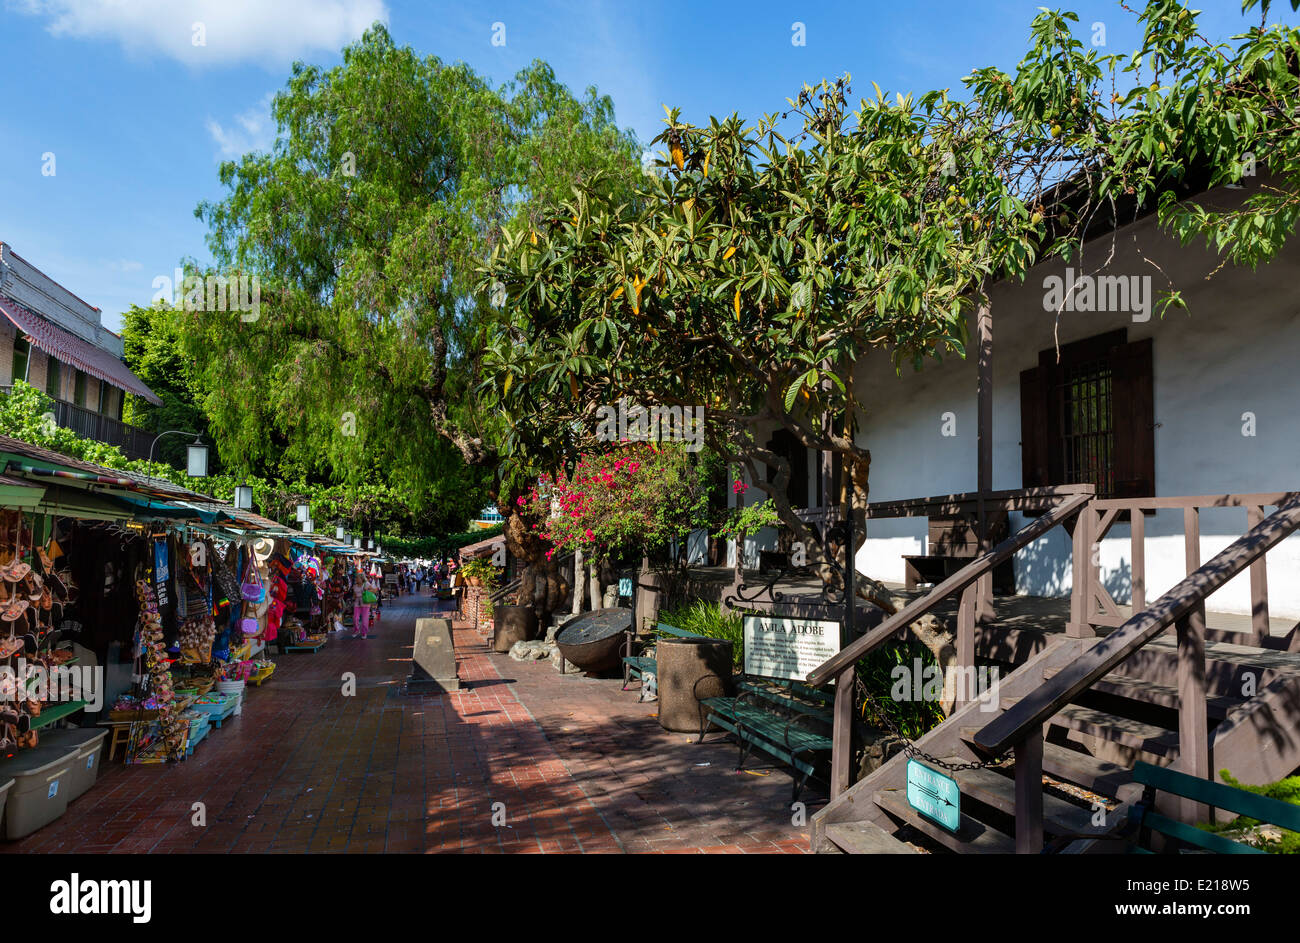 Stalls outside the Avila Adobe on Olvera Street in downtown Los Angeles, California, USA - Stock Image